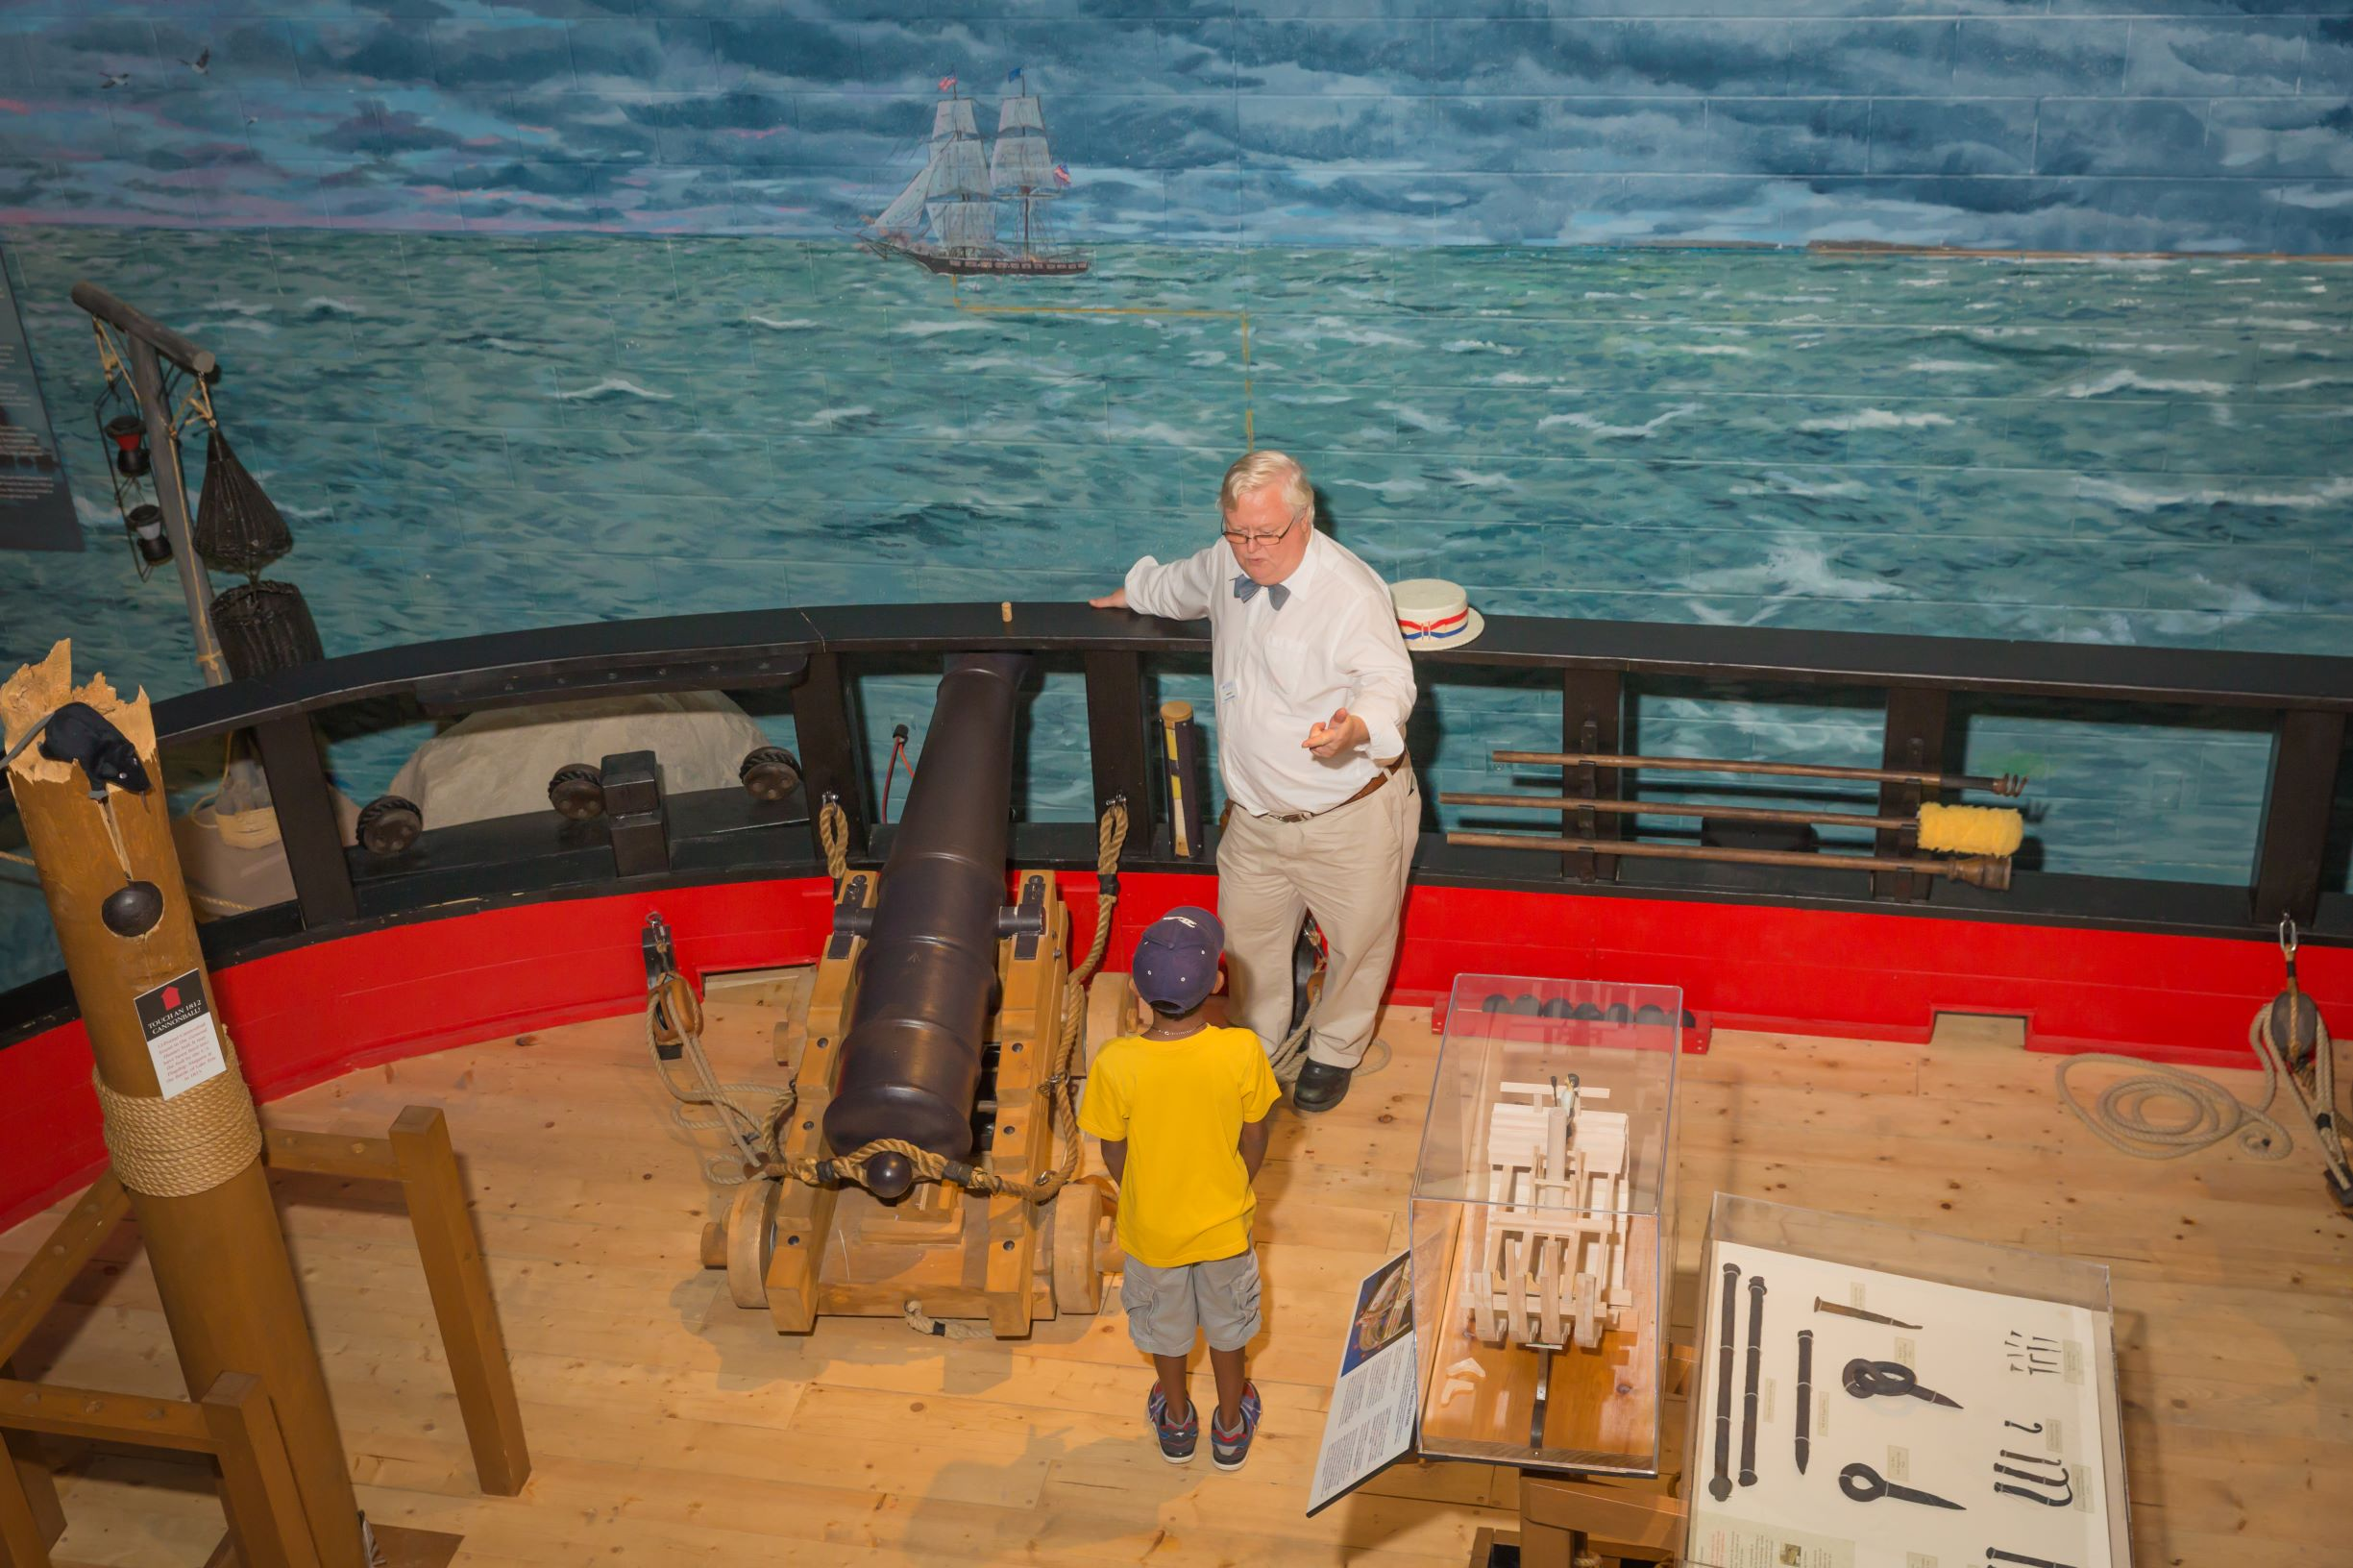 photo of man with small child on HMS General Hunter replica boat